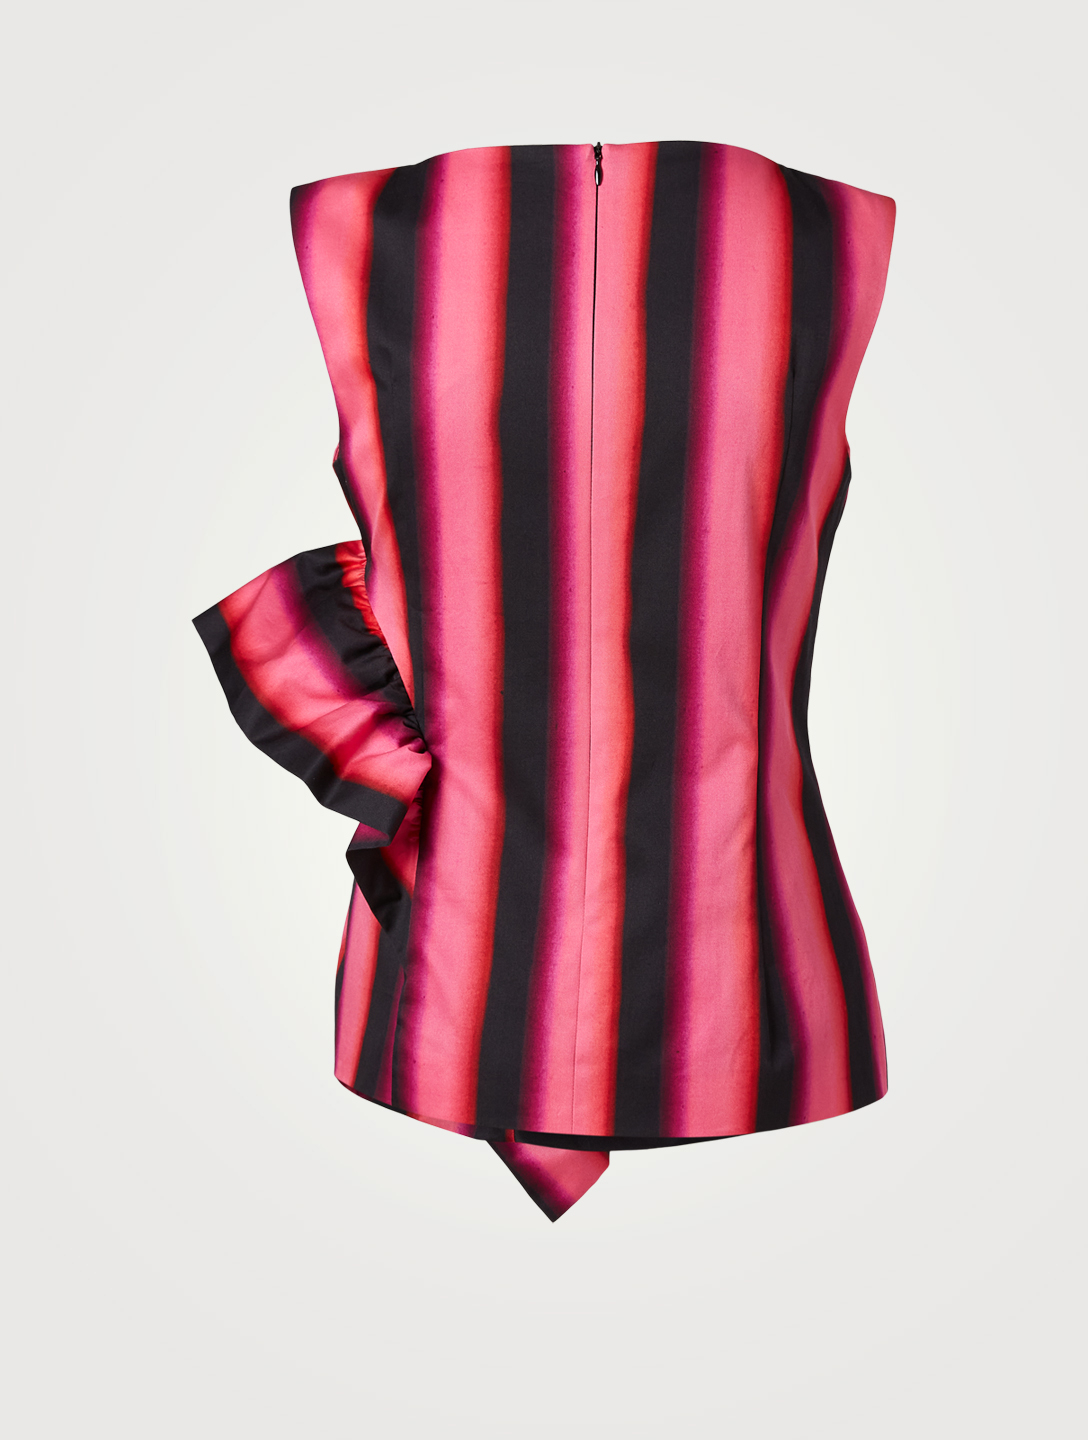 DRIES VAN NOTEN Cyvan Sleeveless Blouse In Blurred Stripe Print Women's Pink